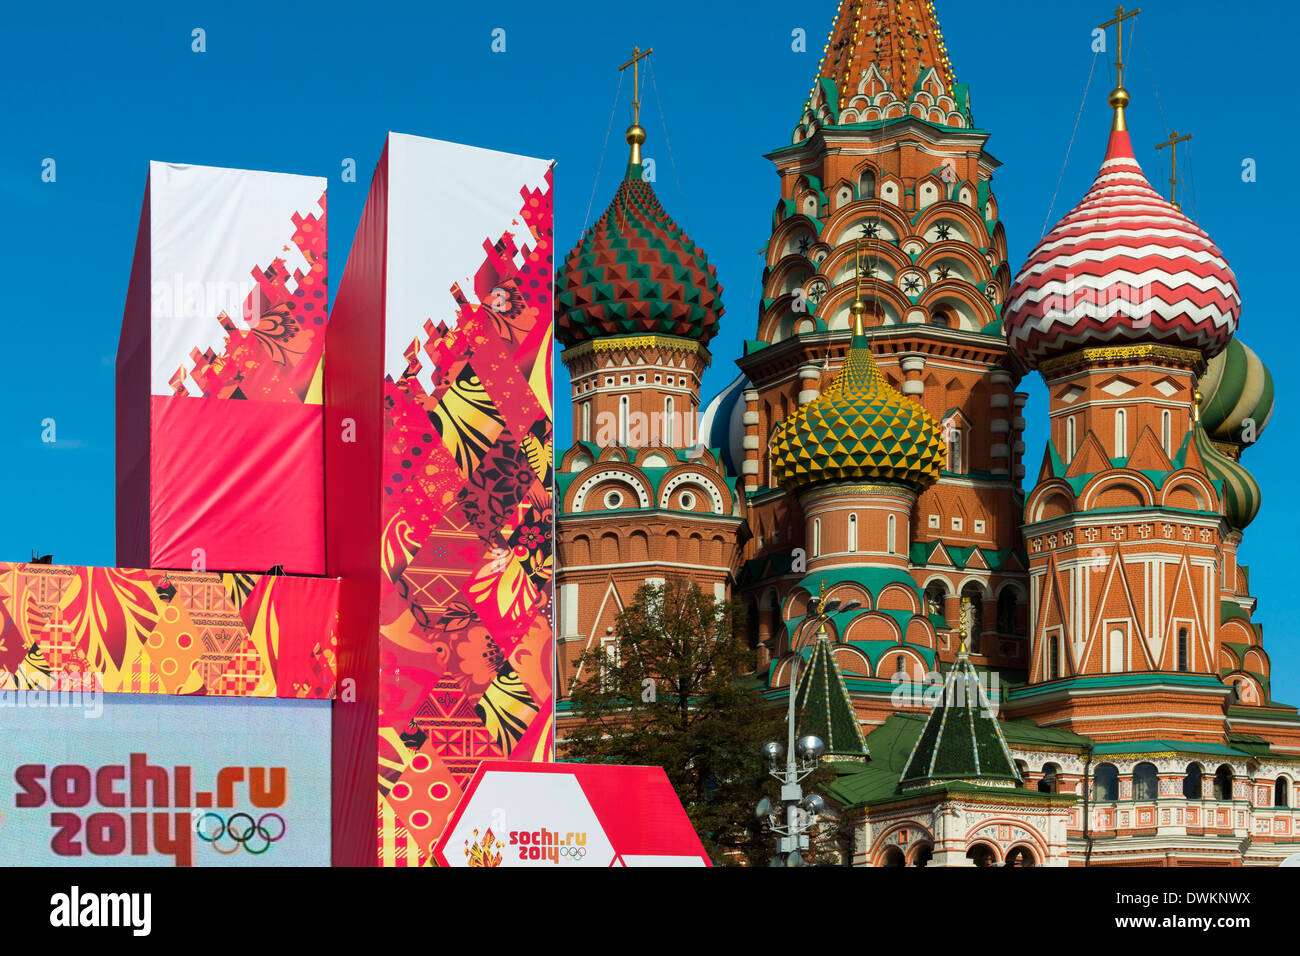 Torch Relay stand for Sochi Winter Olympics 2014, with onion domes of St. Basil's Cathedral beyond, Red Square, Moscow, Russia - Stock Image